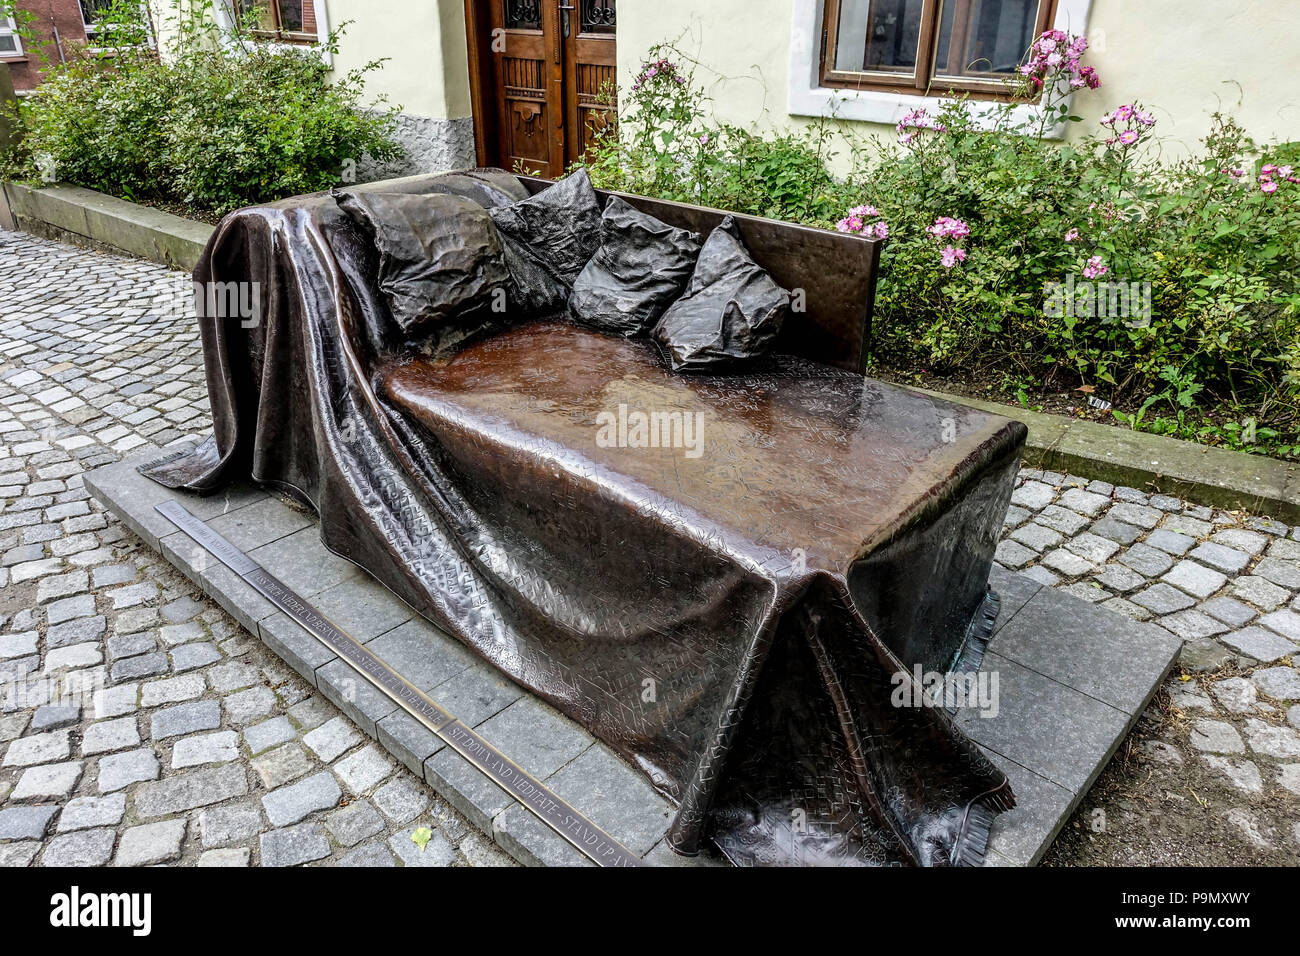 Couch in front of the Sigmund Freud birthplace, house, Pribor, Moravia, Czech Republic - Stock Image